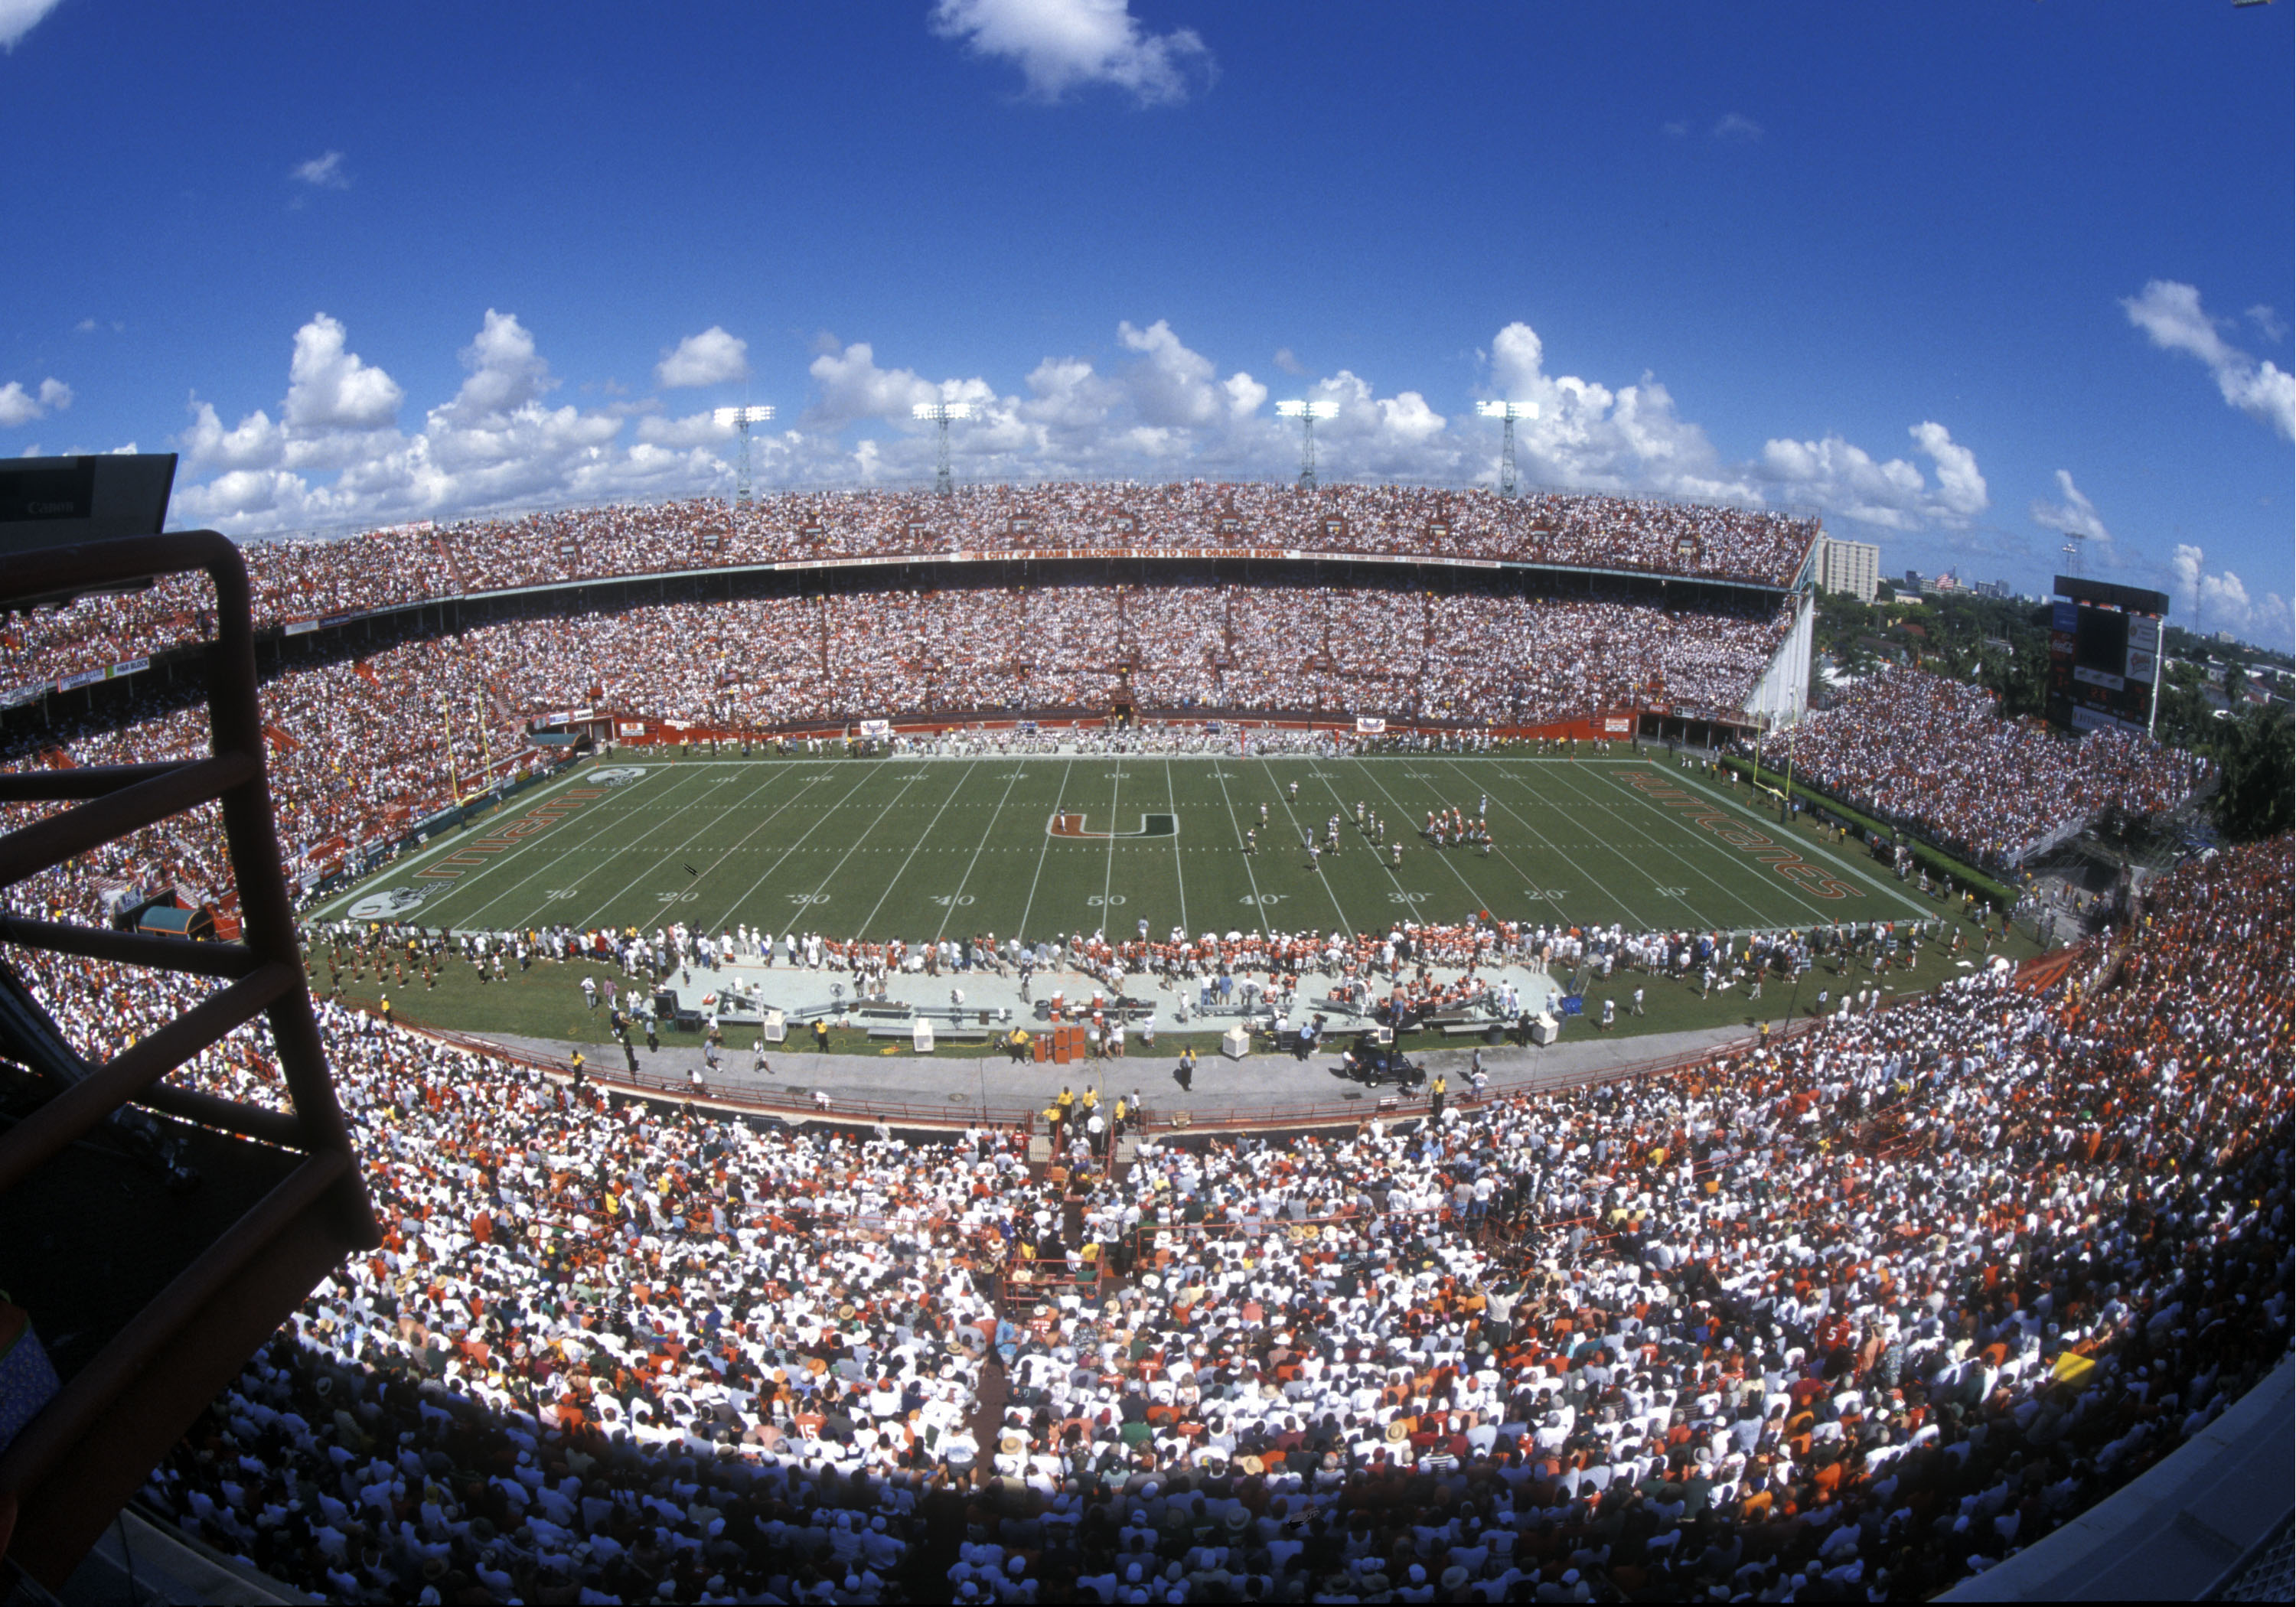 The historic Orange Bowl in Miami is the site of the University of Miami versus Florida State football game, October 12, 2002.  (Photo by Al Messerschmidt/Getty Images)